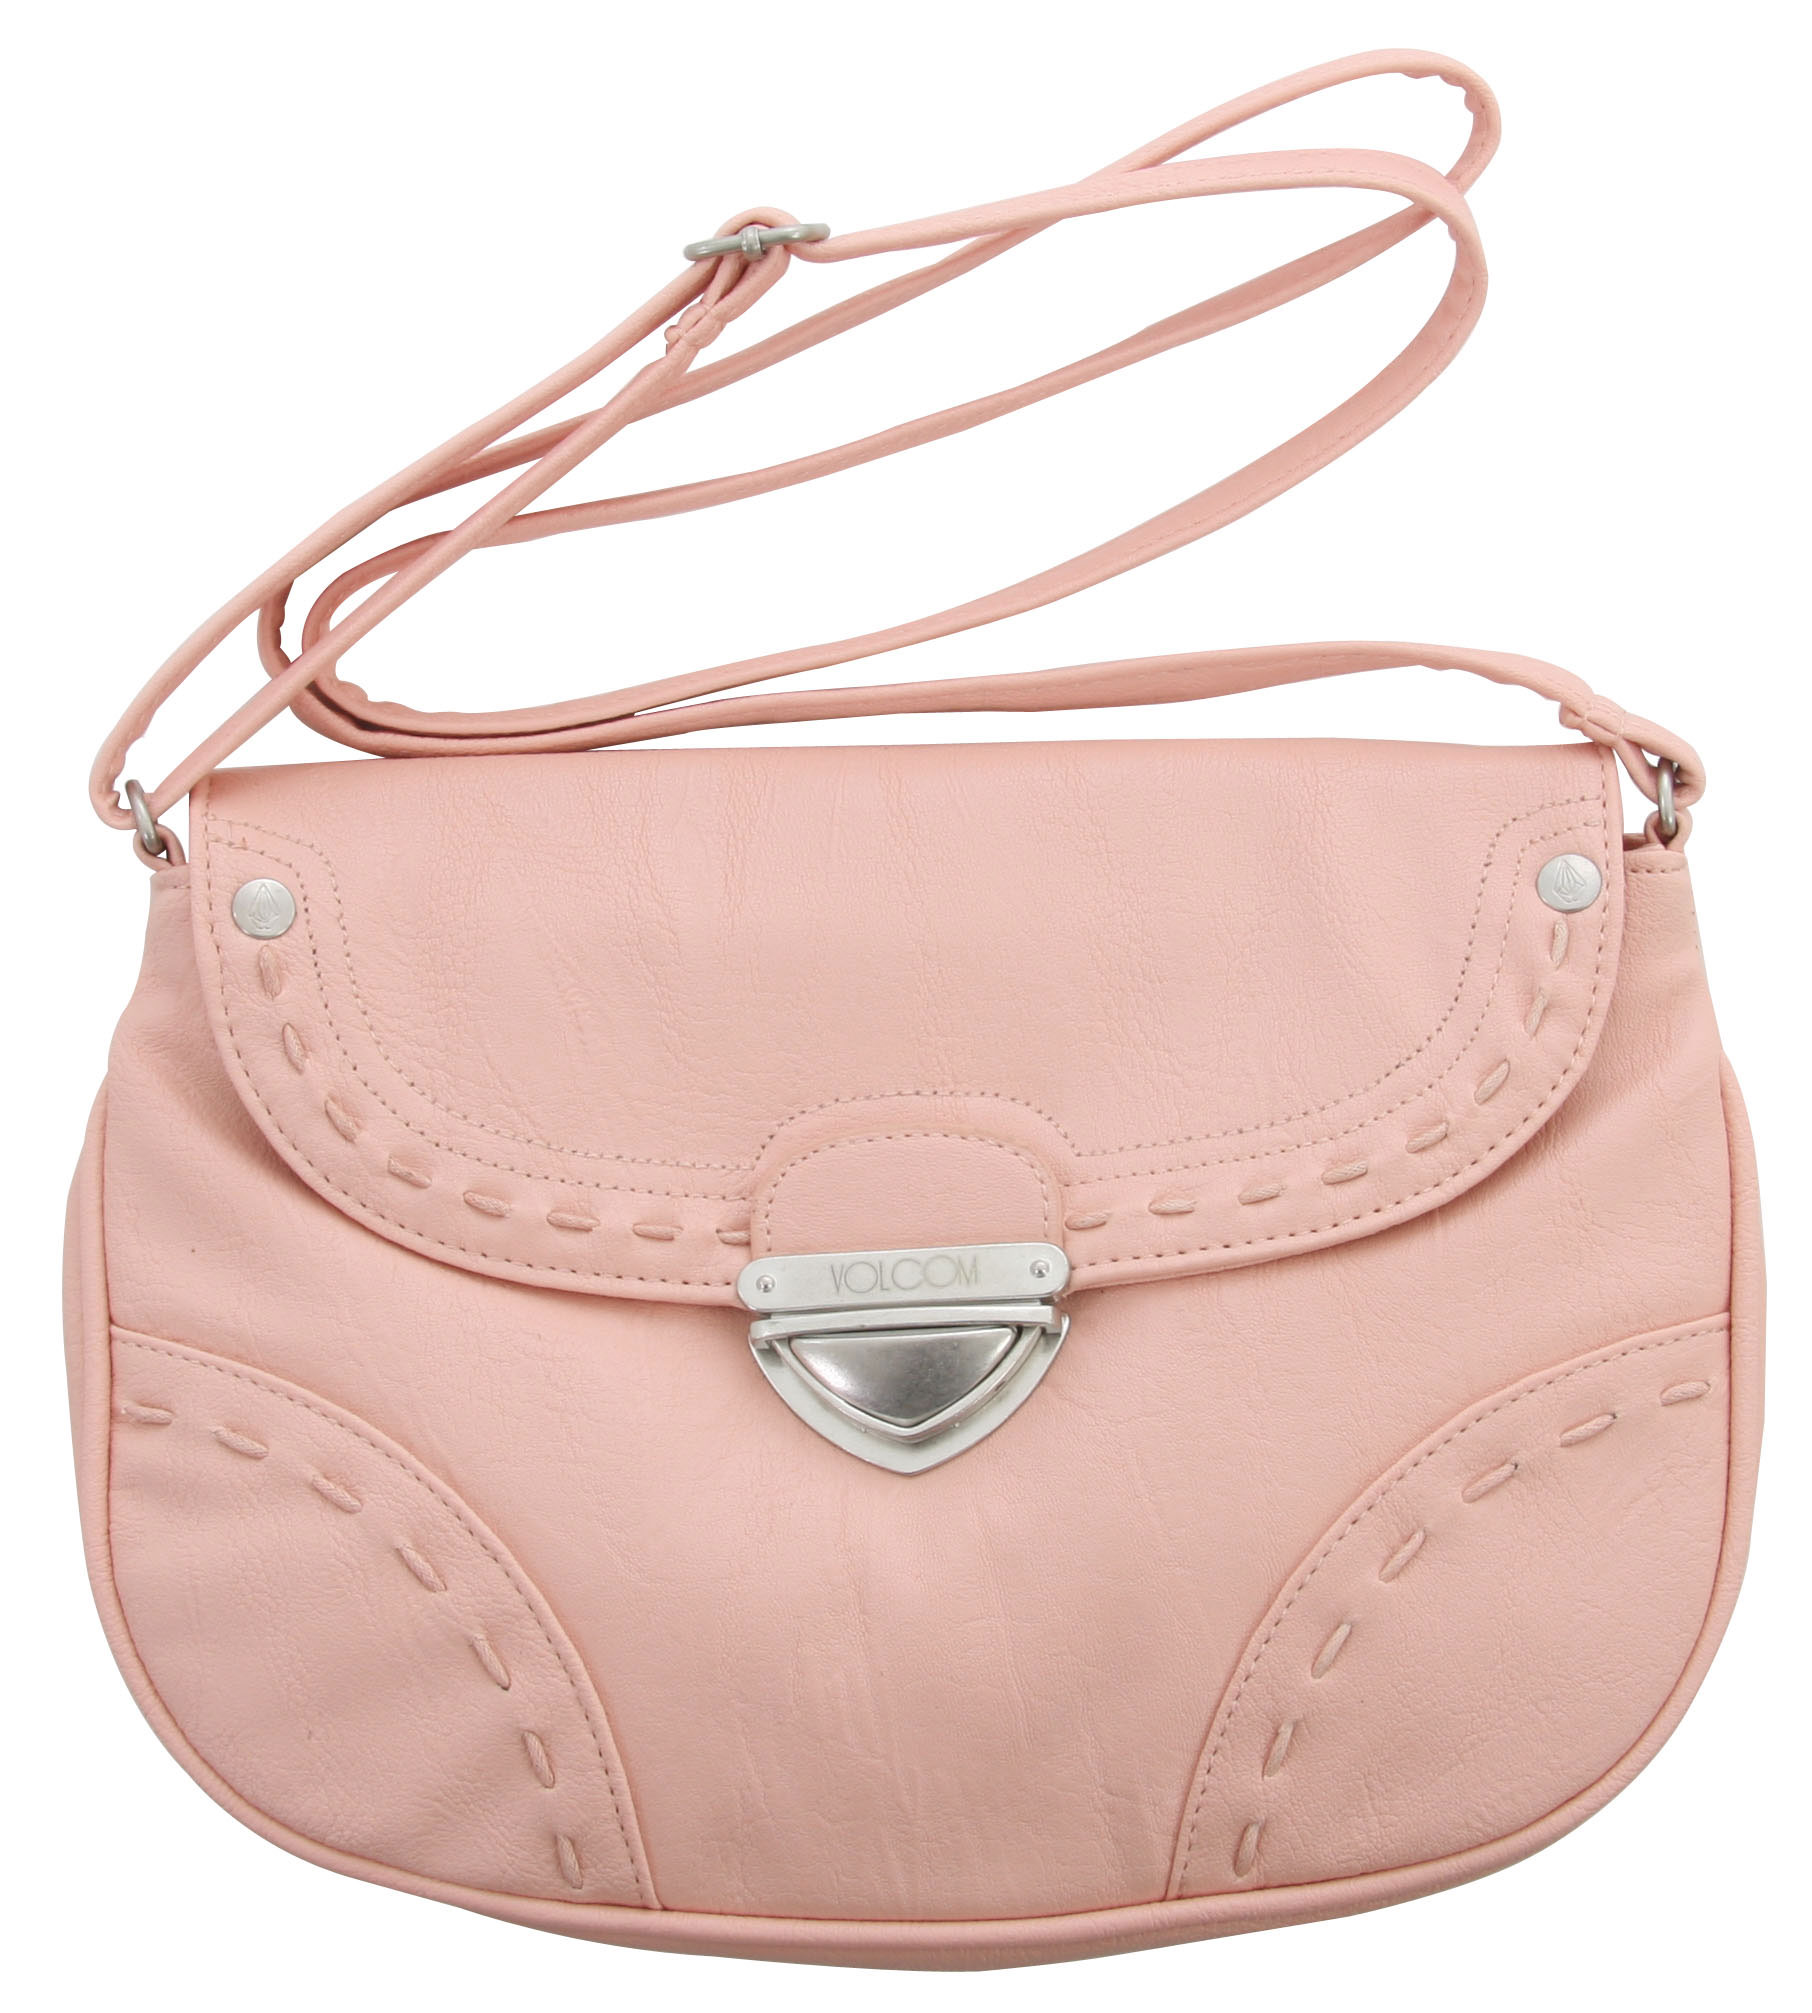 "Entertainment Key Features of the Volcom Nocturnal Crossbody Purse: Soft, slightly wrinkled PVC Purse with adjustable shoulder strap.6.5""H x 10""W x 2""D 100% Polyvinyl Chloride (PVC) - $34.95"